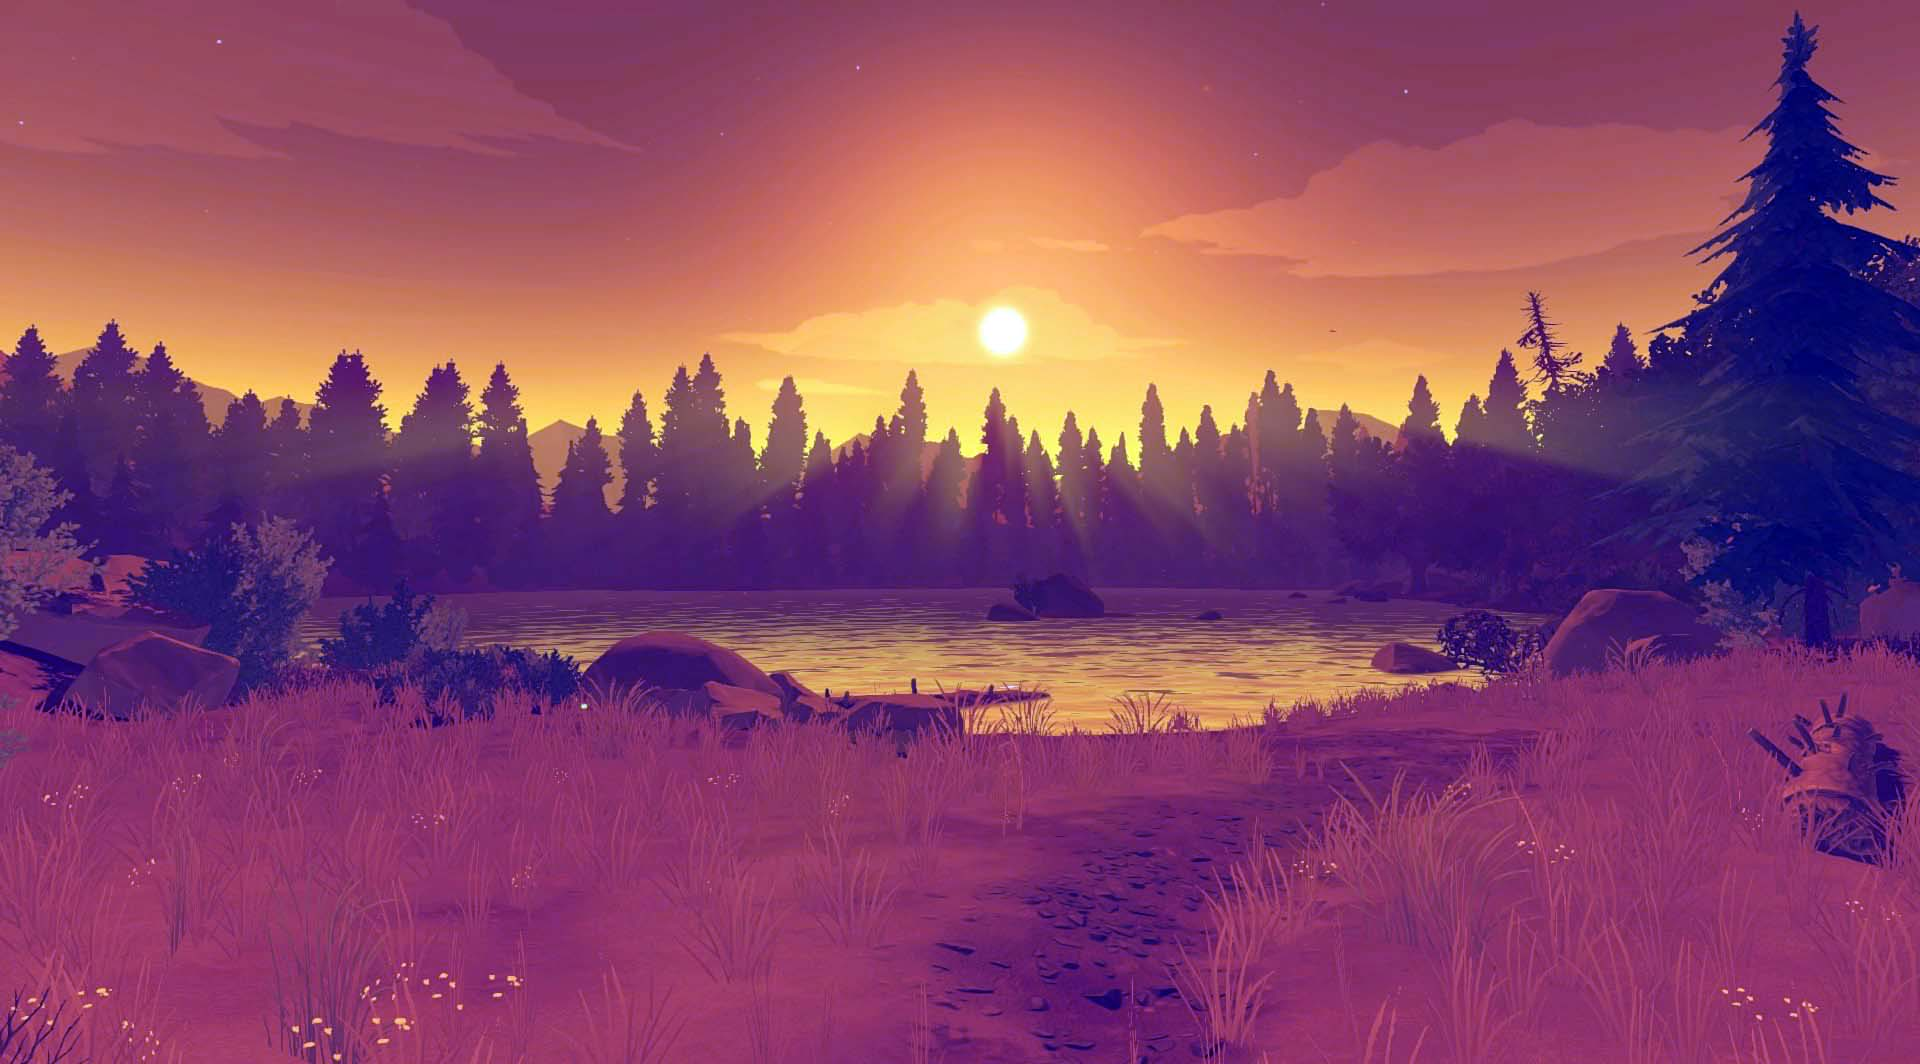 Firewatch Game Wallpaper Pictures 59153 1920x1064 px .